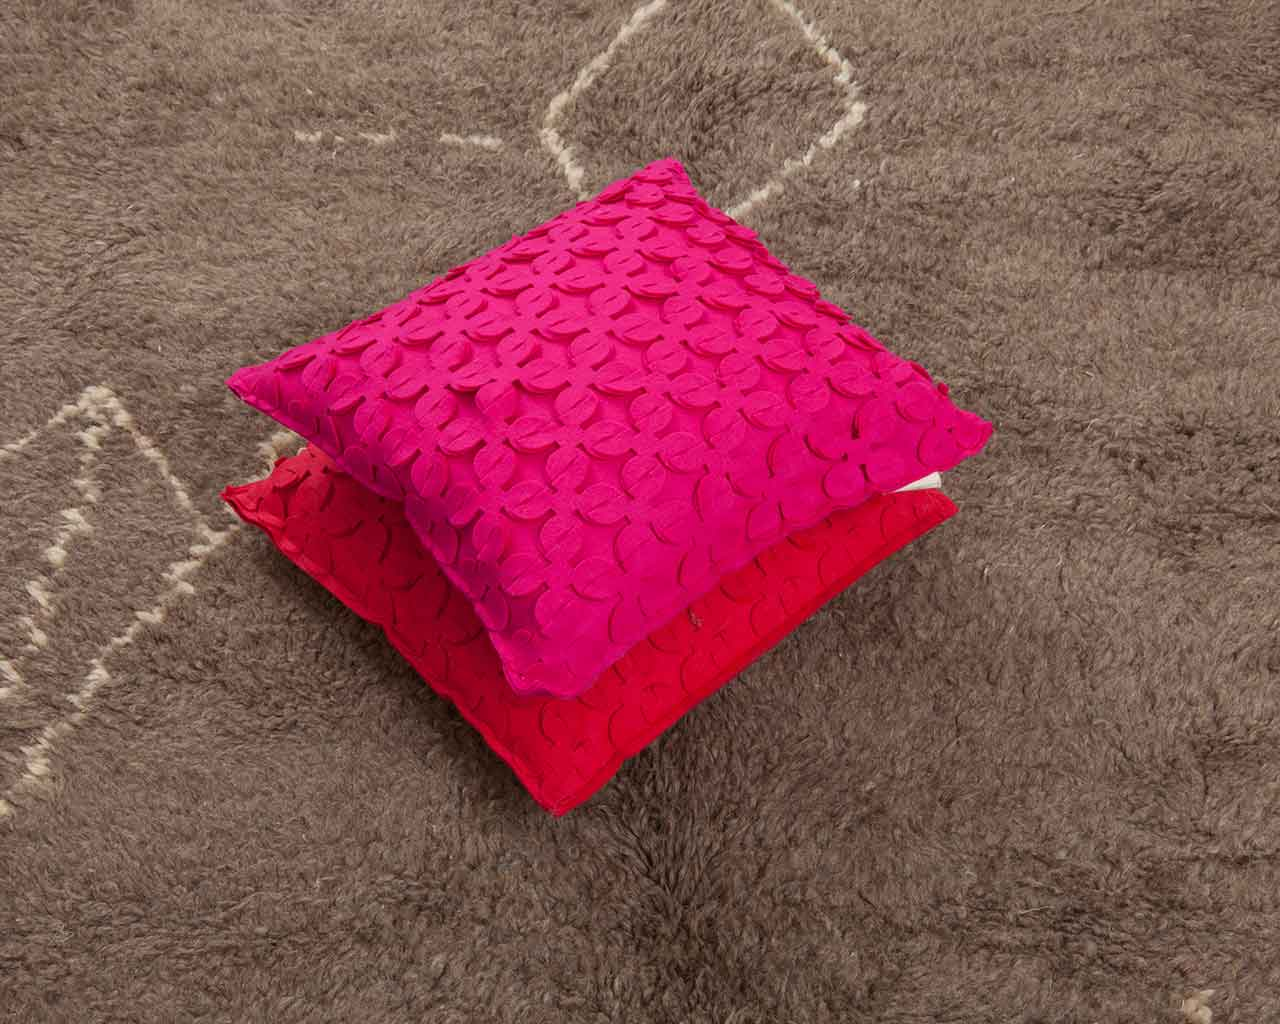 bynasia pink pillows grey carpet white pattern 1